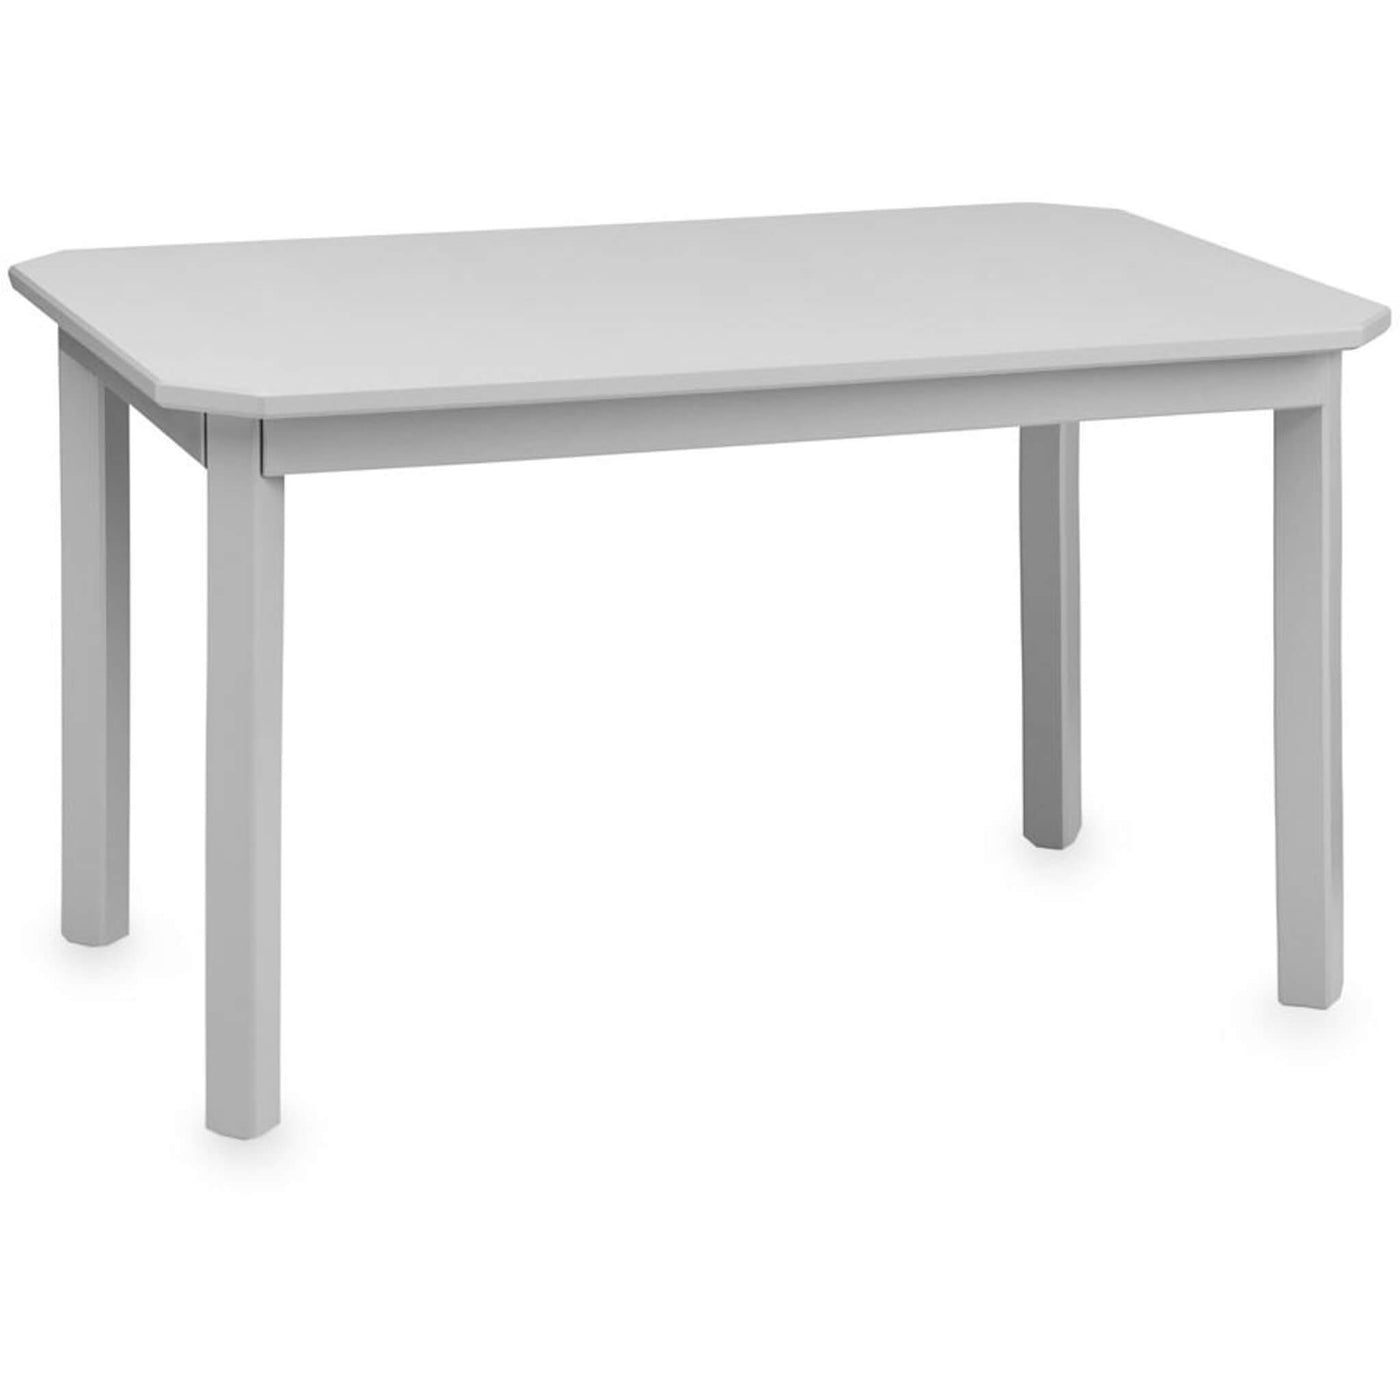 Harlequin Table - Grey